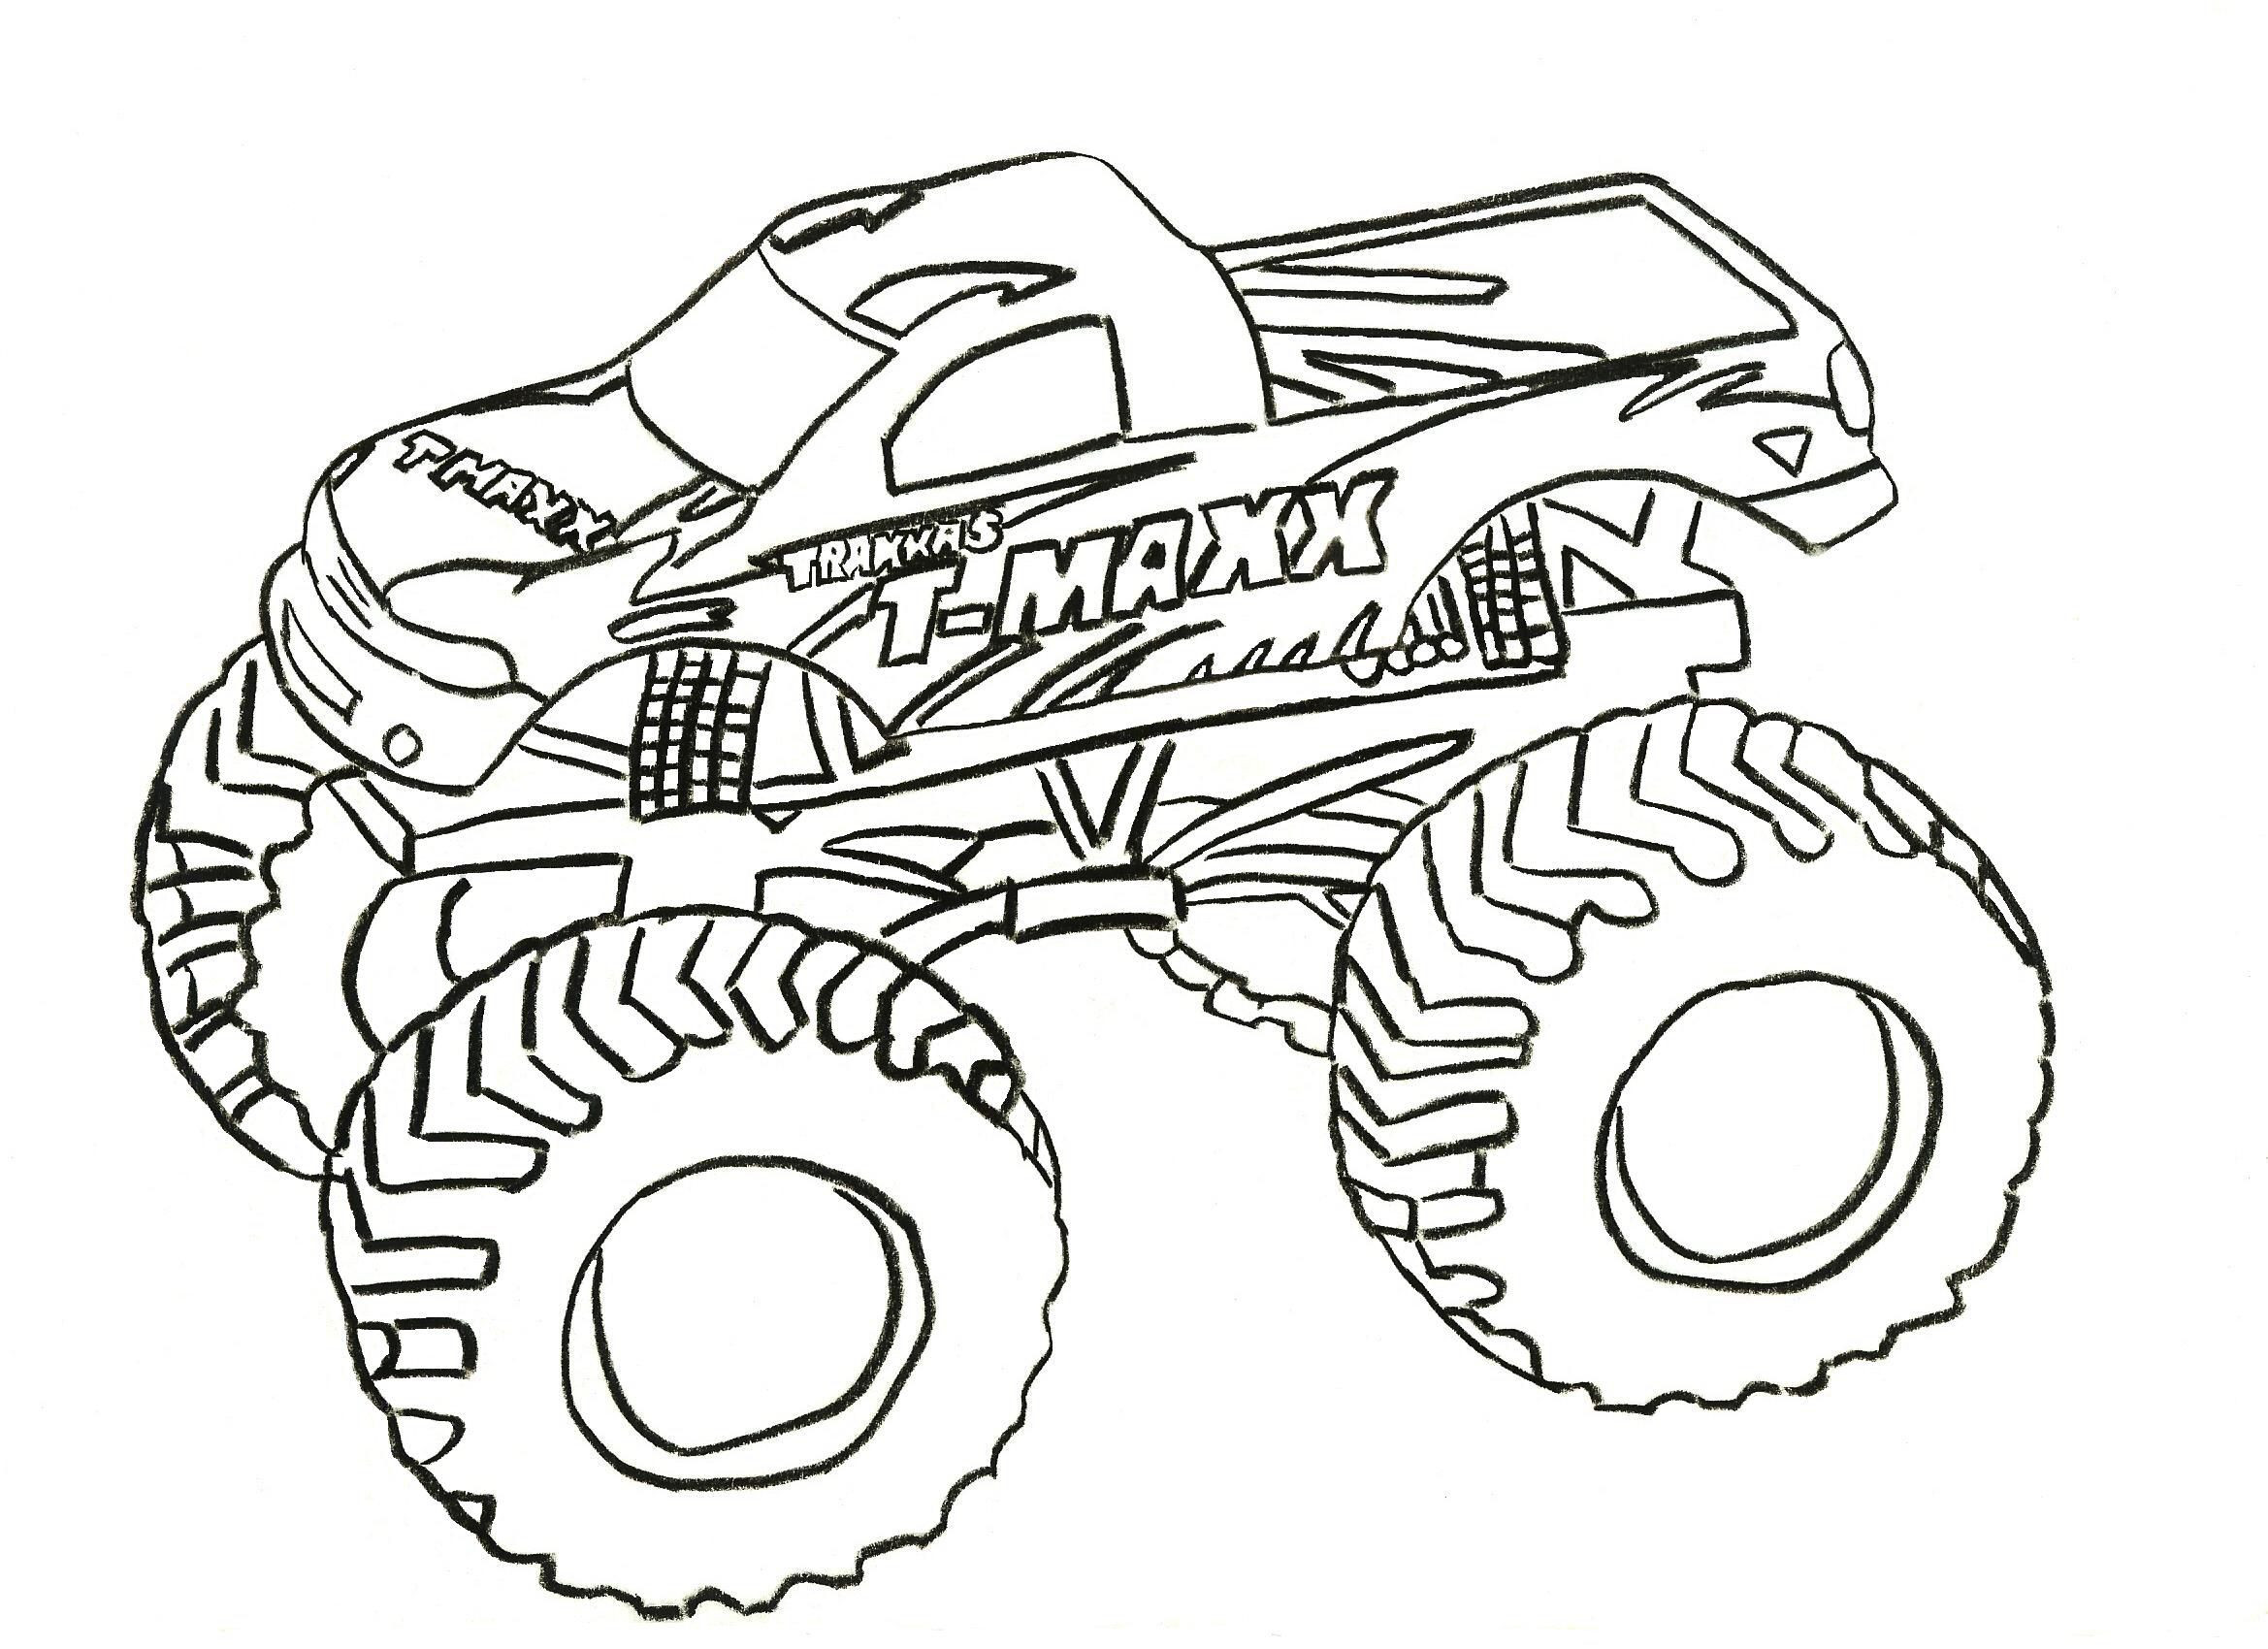 Blaze Coloring Pages Free At Getdrawings Com Free For Personal Use